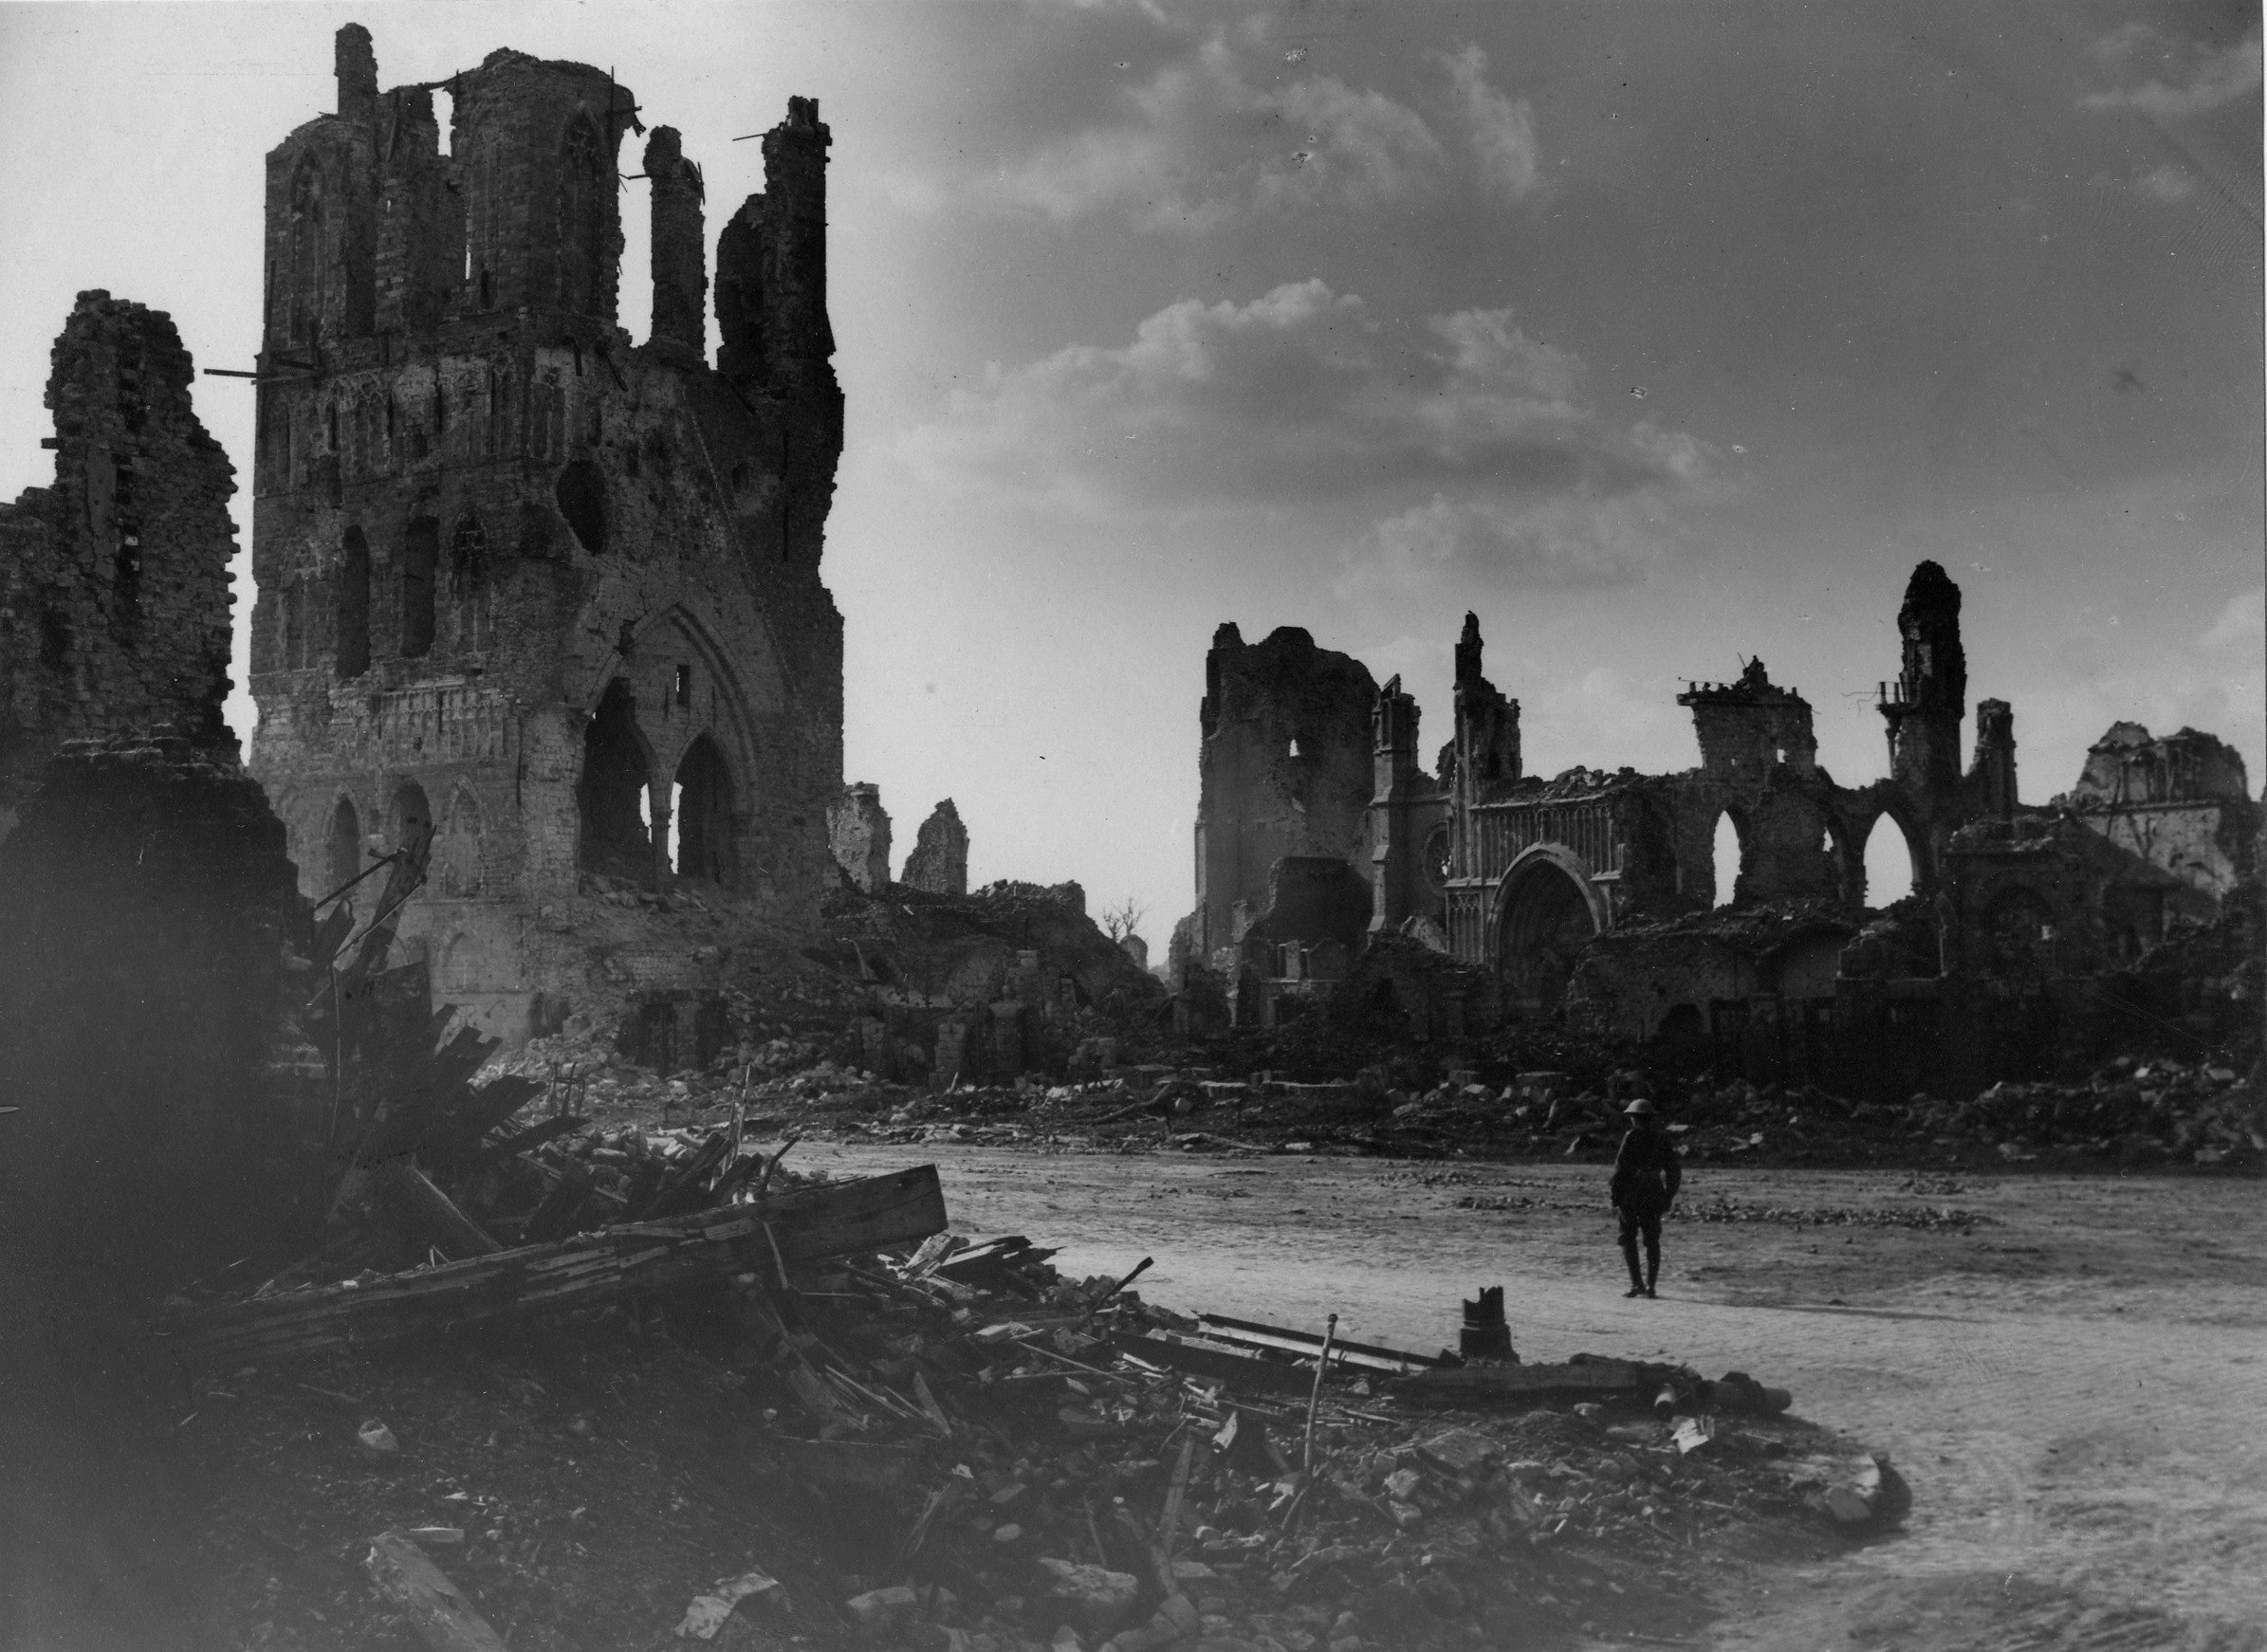 An unidentified Austrailan soldier standing amidst the ruins of Ypres, Belgium, and looking towards the remains of the Cloth Hall.